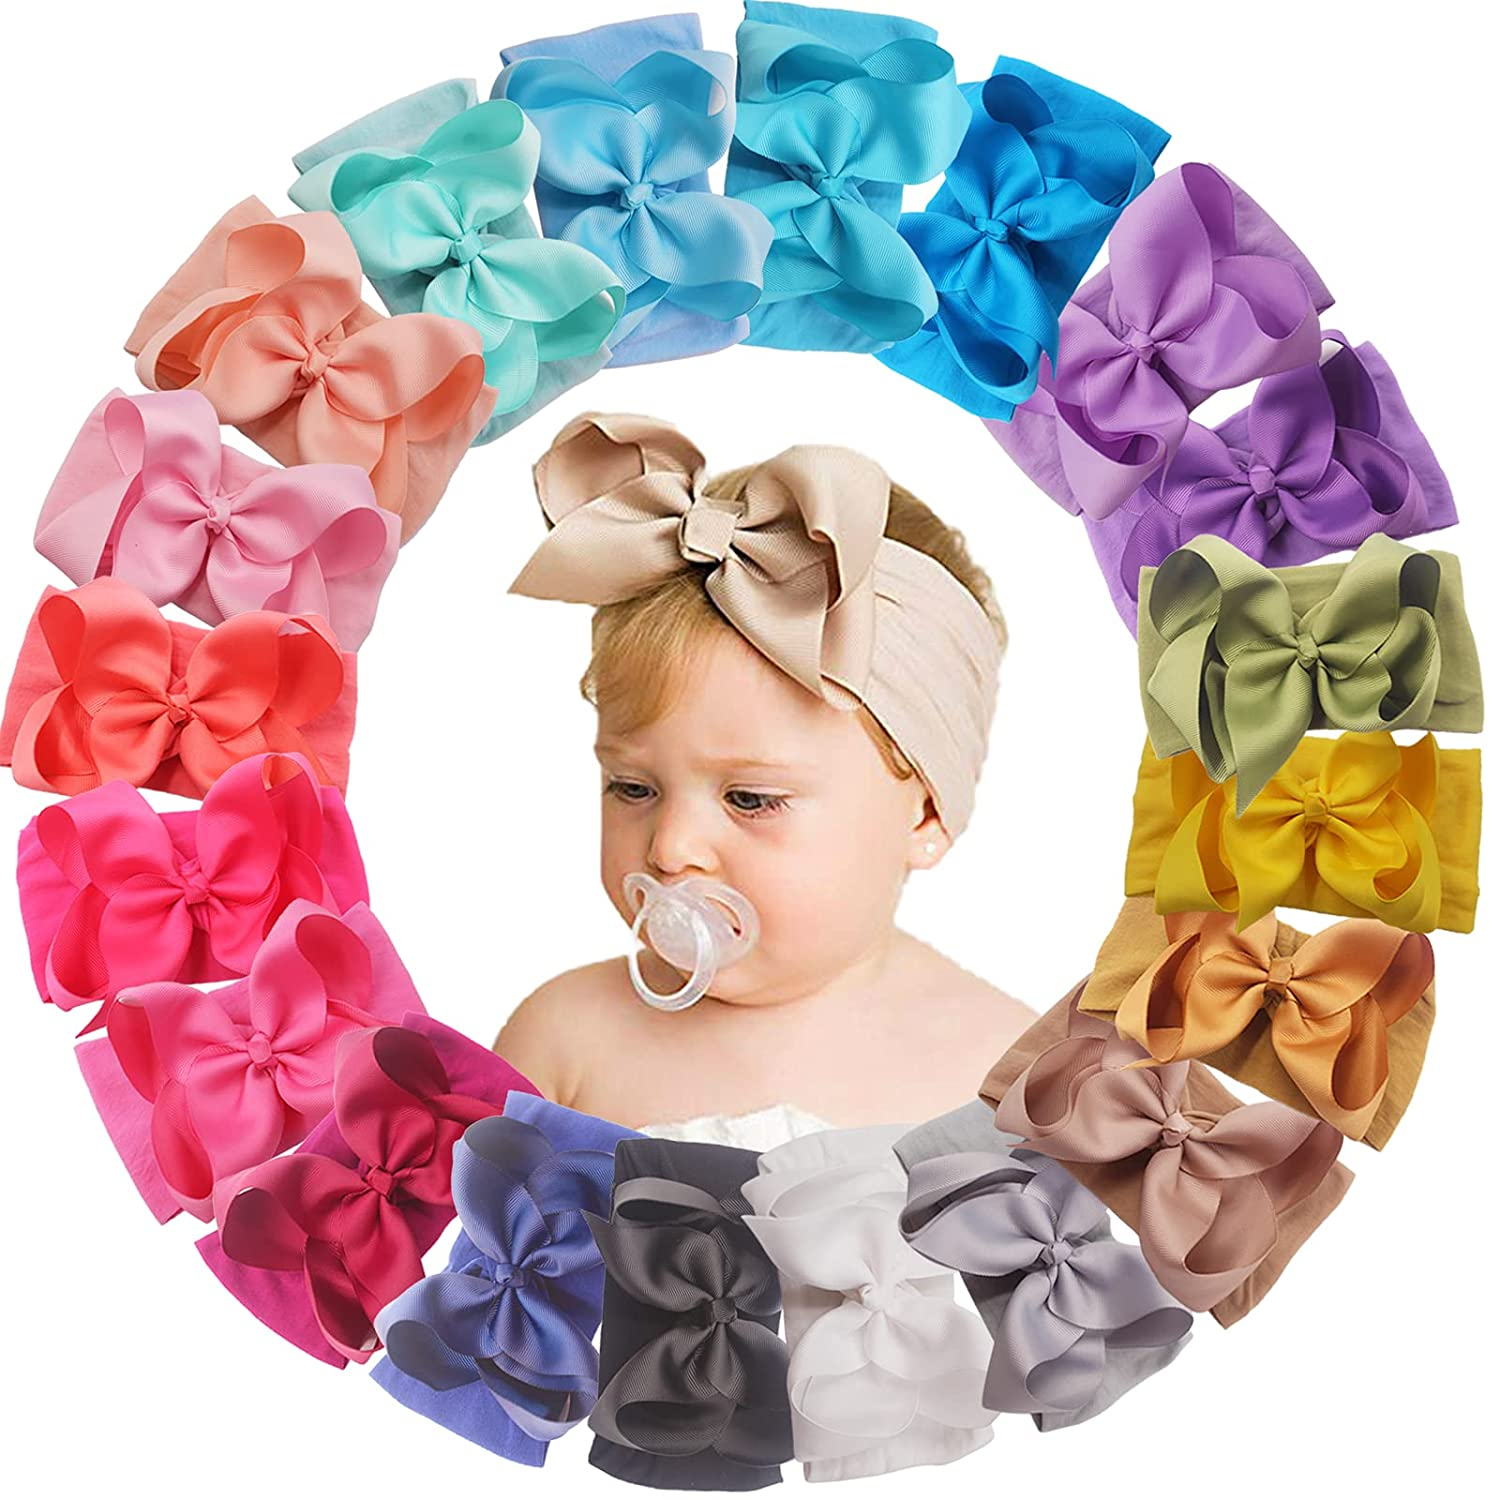 20 Regular discount Colors 6 Inches Baby Girls Direct stock discount Large Headbands Elastic Big Bows N